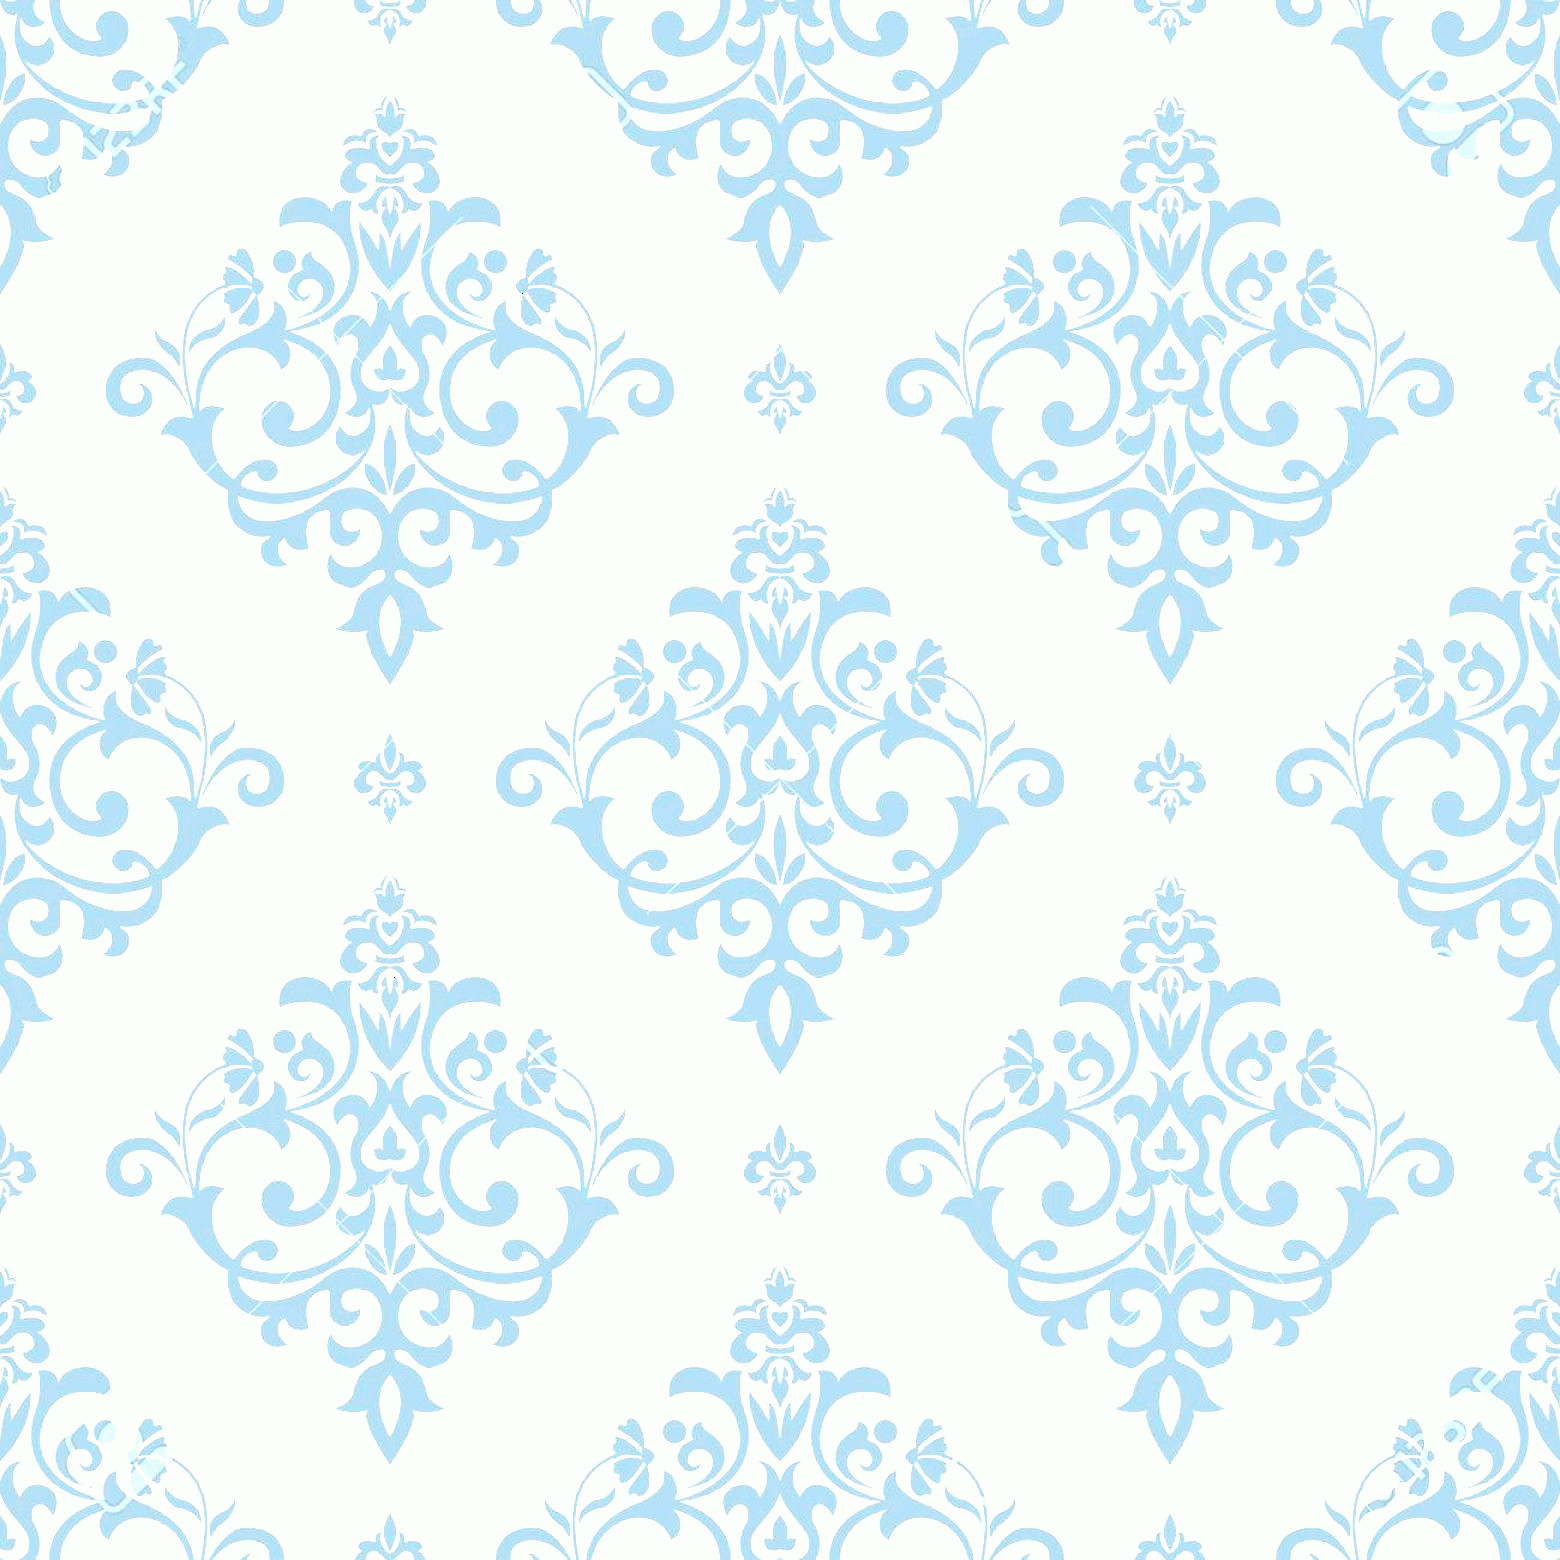 Blue And White Damask Vectors: Photostock Vector Floral Pattern Wallpaper Baroque Damask Seamless Vector Background Blue And White Ornament